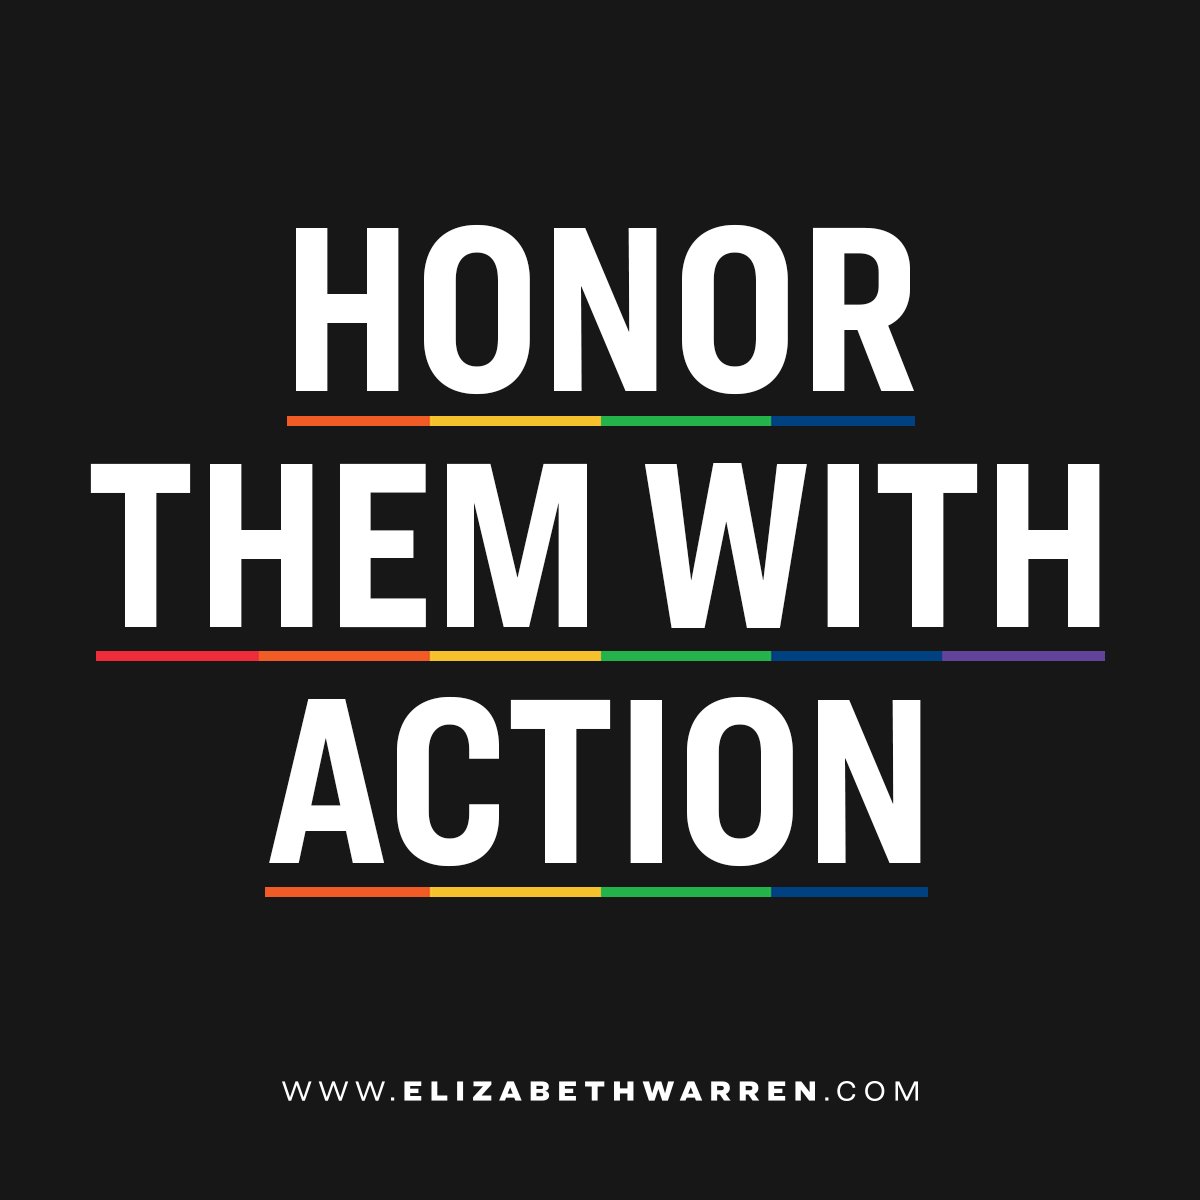 @ewarren's photo on #HonorThemWithAction